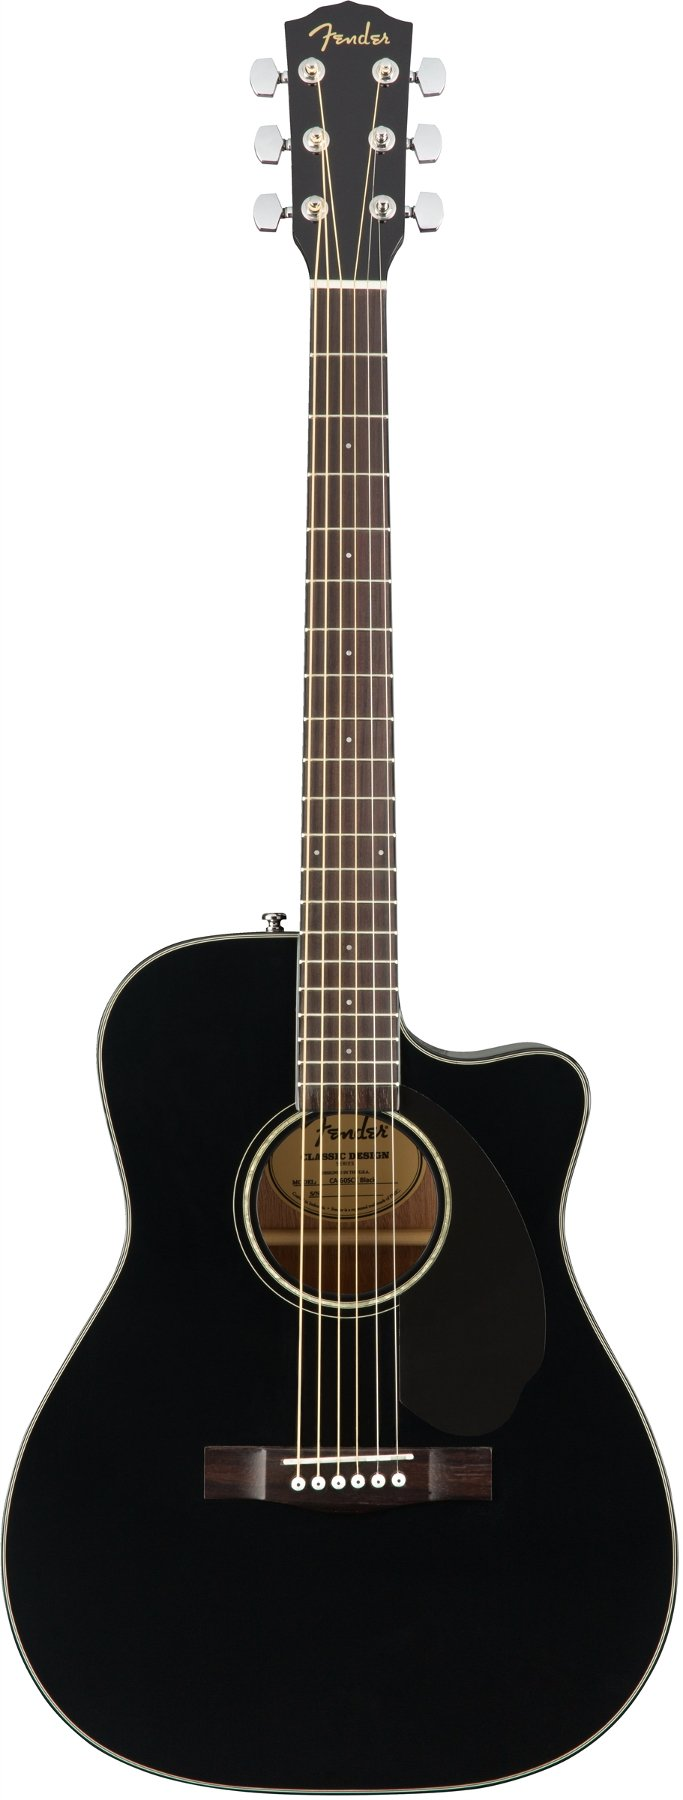 Concert Cutaway Acoustic-Electric Guitar with Rosewood Fingerboard